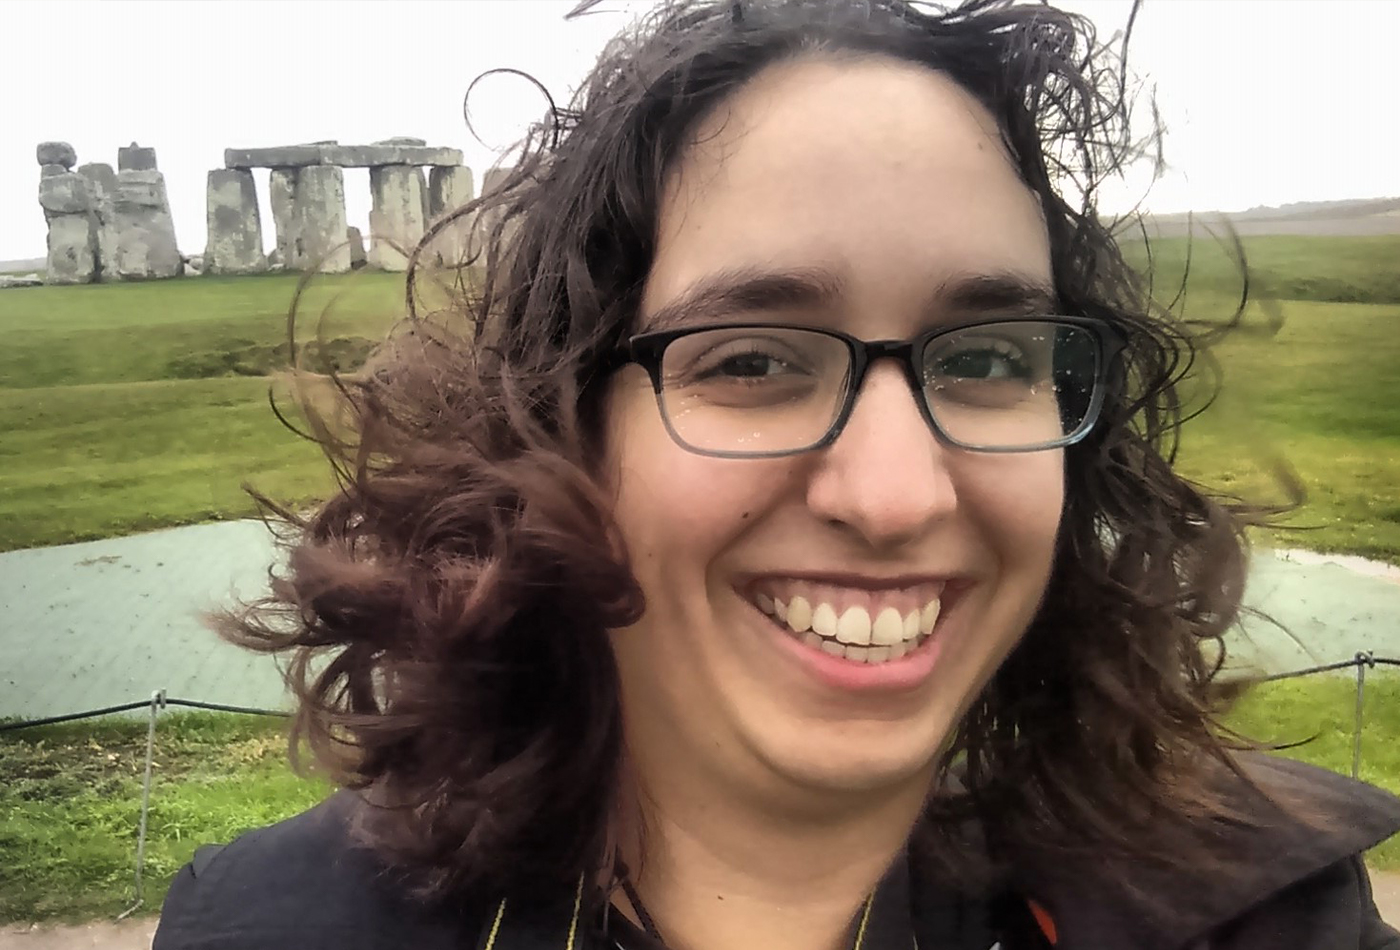 A female graduate student takes a self portrait in front of Stonehenge.